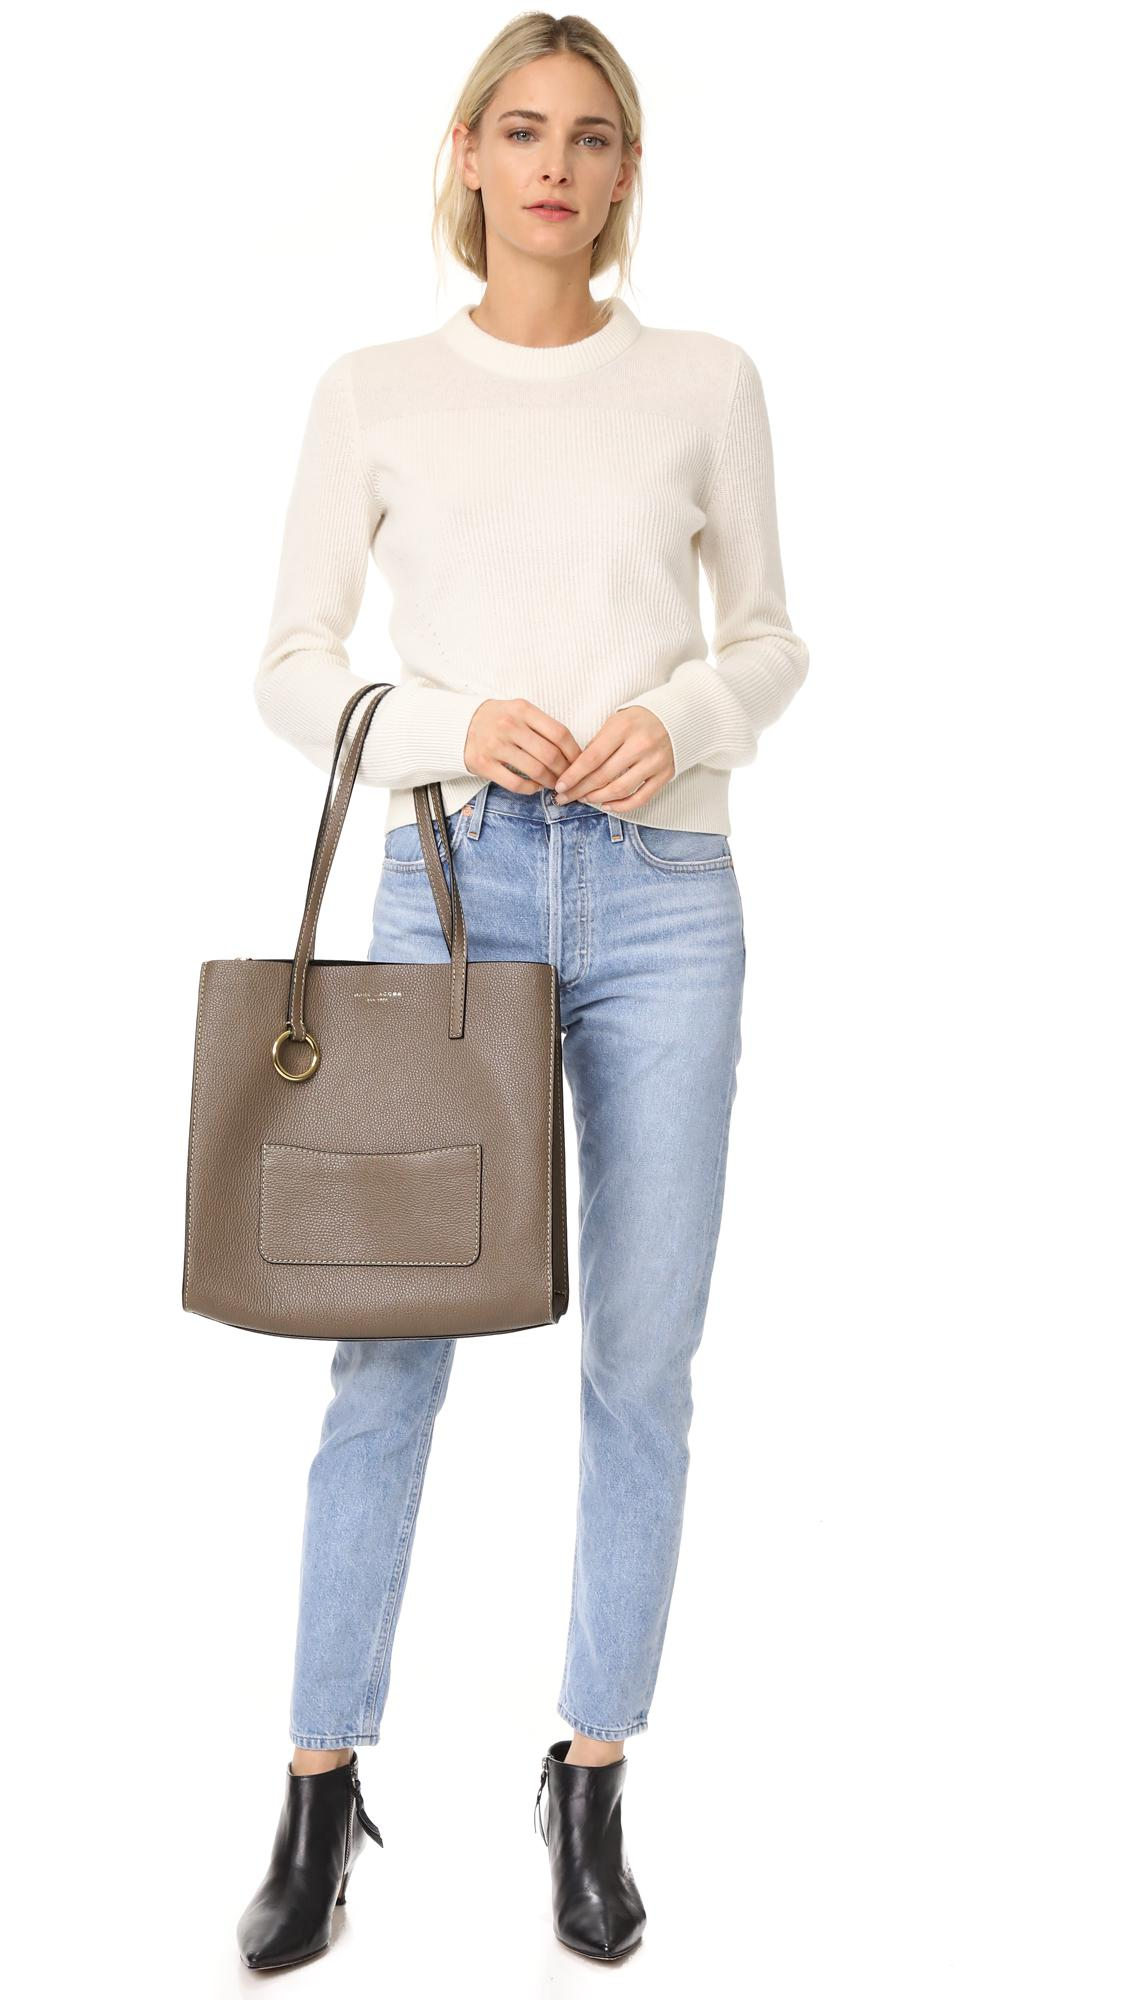 The Bold Grind Shopper Marc Jacobs vOmfhPy